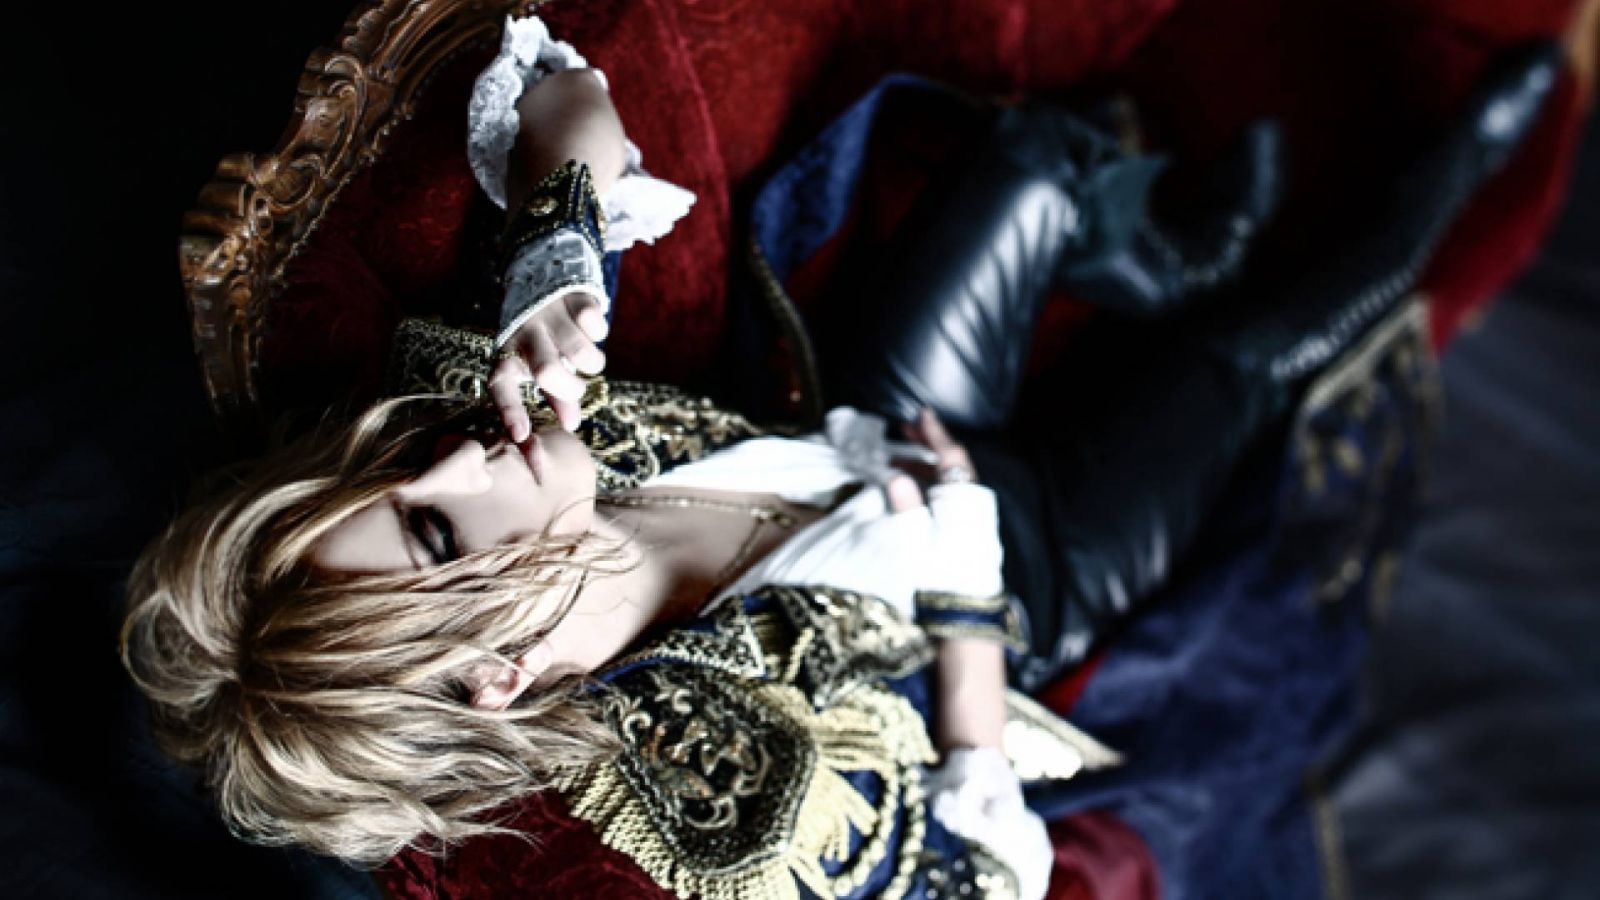 KAMIJO w The Underworld, Londyn © CHATEAU AGENCY CO., Ltd. All rights reserved.